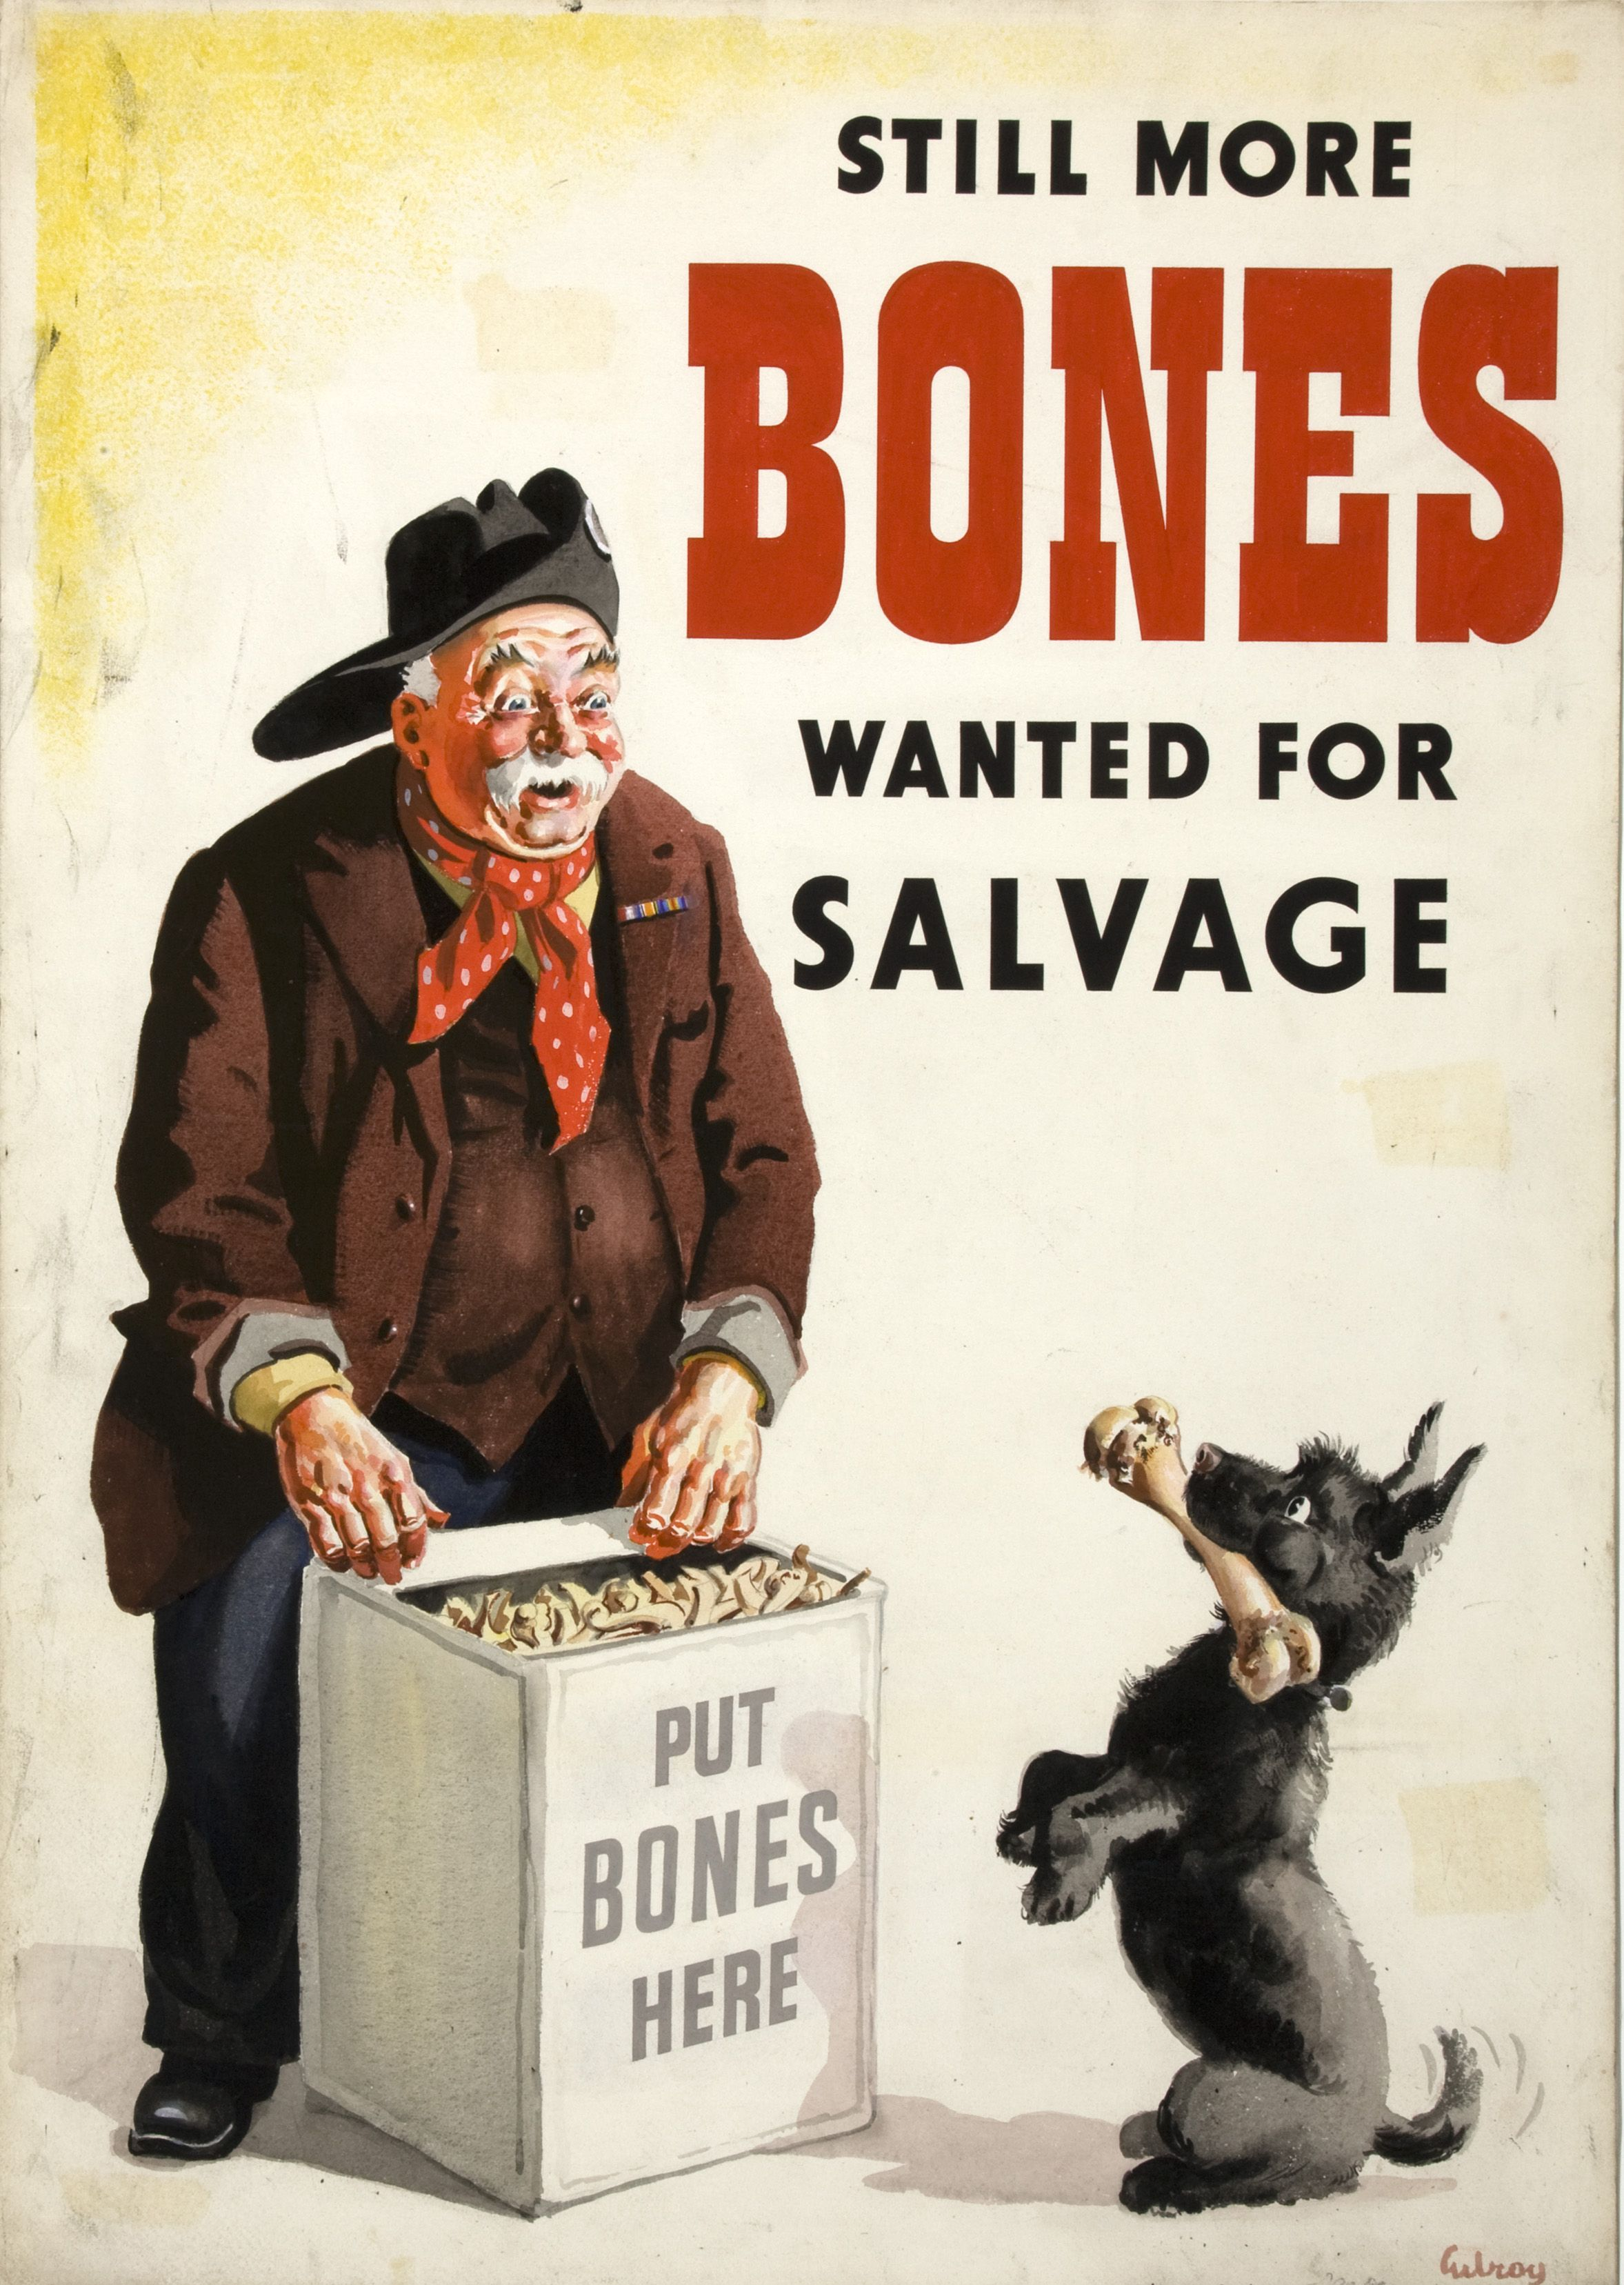 Still More Bones Wanted For Salvage (artist John Gilroy  19391946)